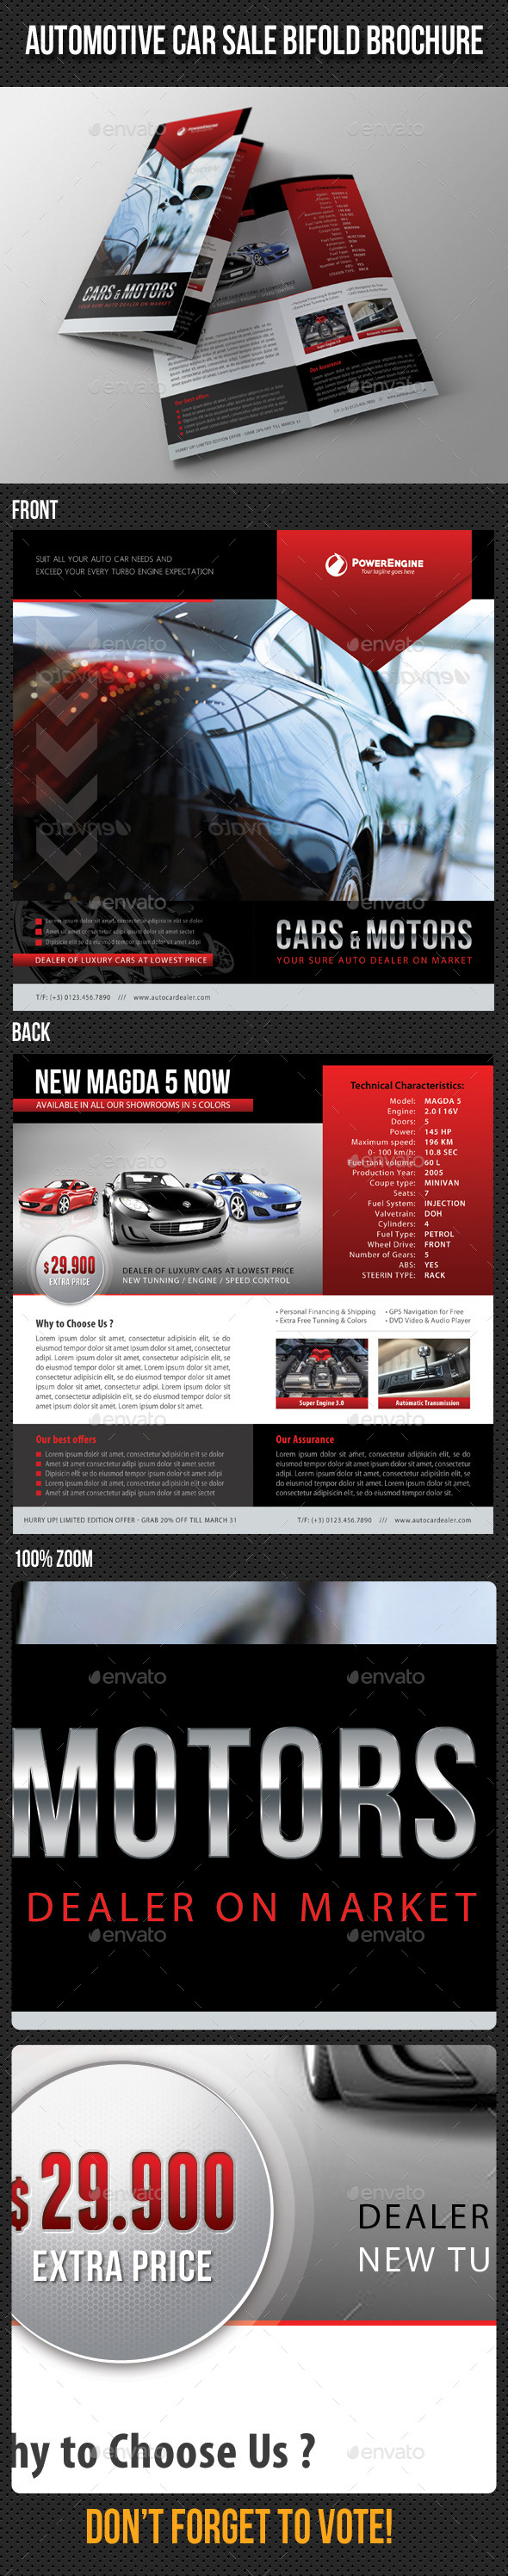 GraphicRiver Automotive Car Sale Rental Bifold Brochure 02 10913276